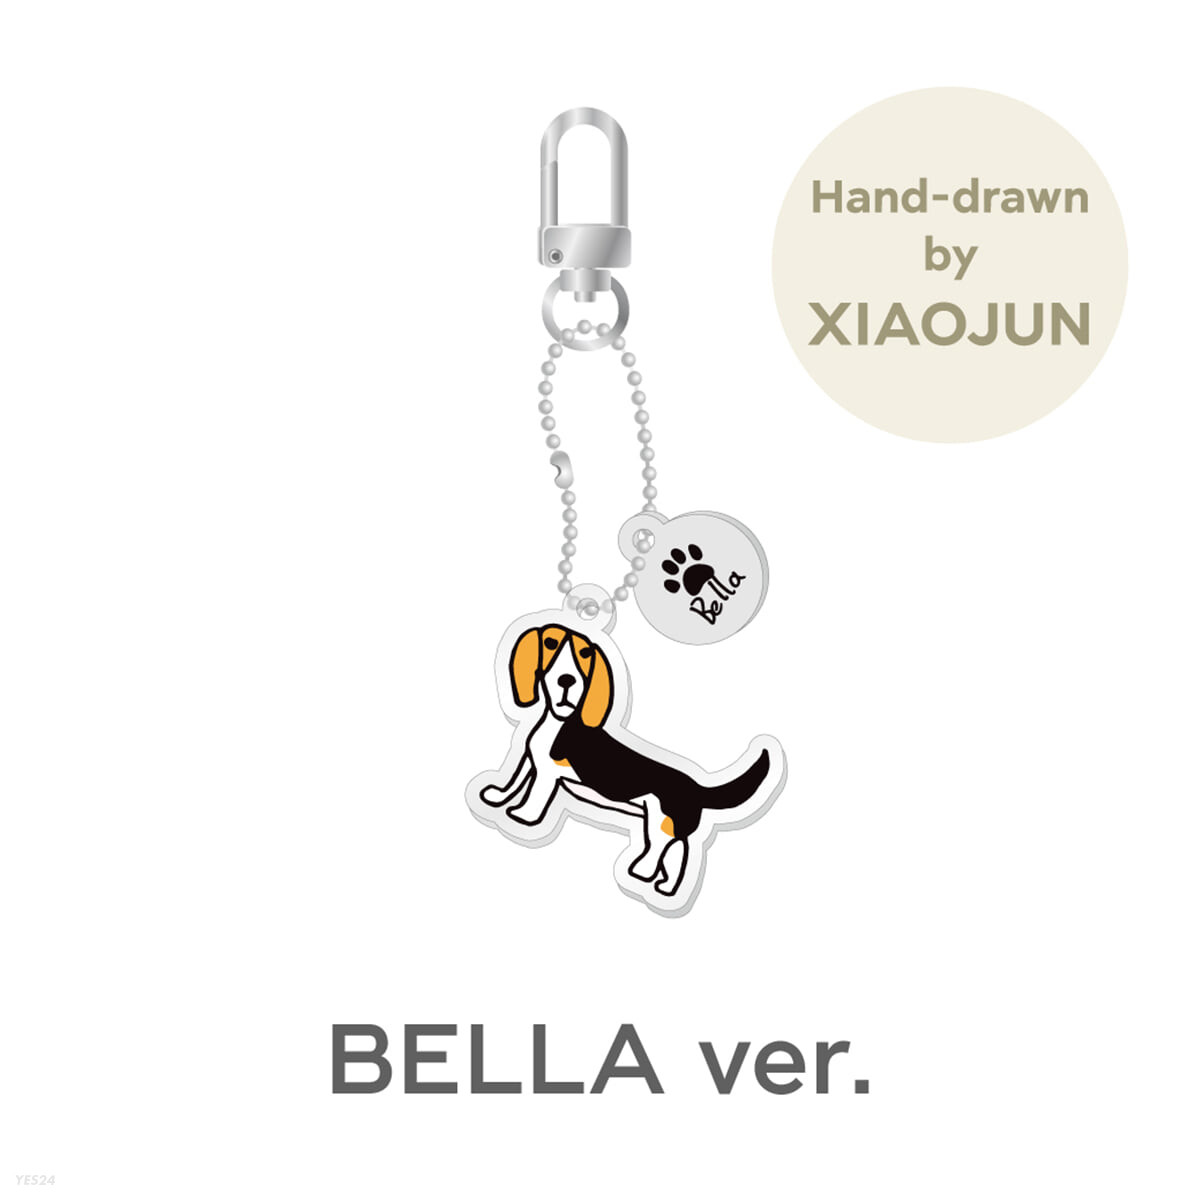 [XIAOJUN] ACRYLIC KEY RING CHARM_BELLA Ver. [Our Home : WayV with Little Friends]